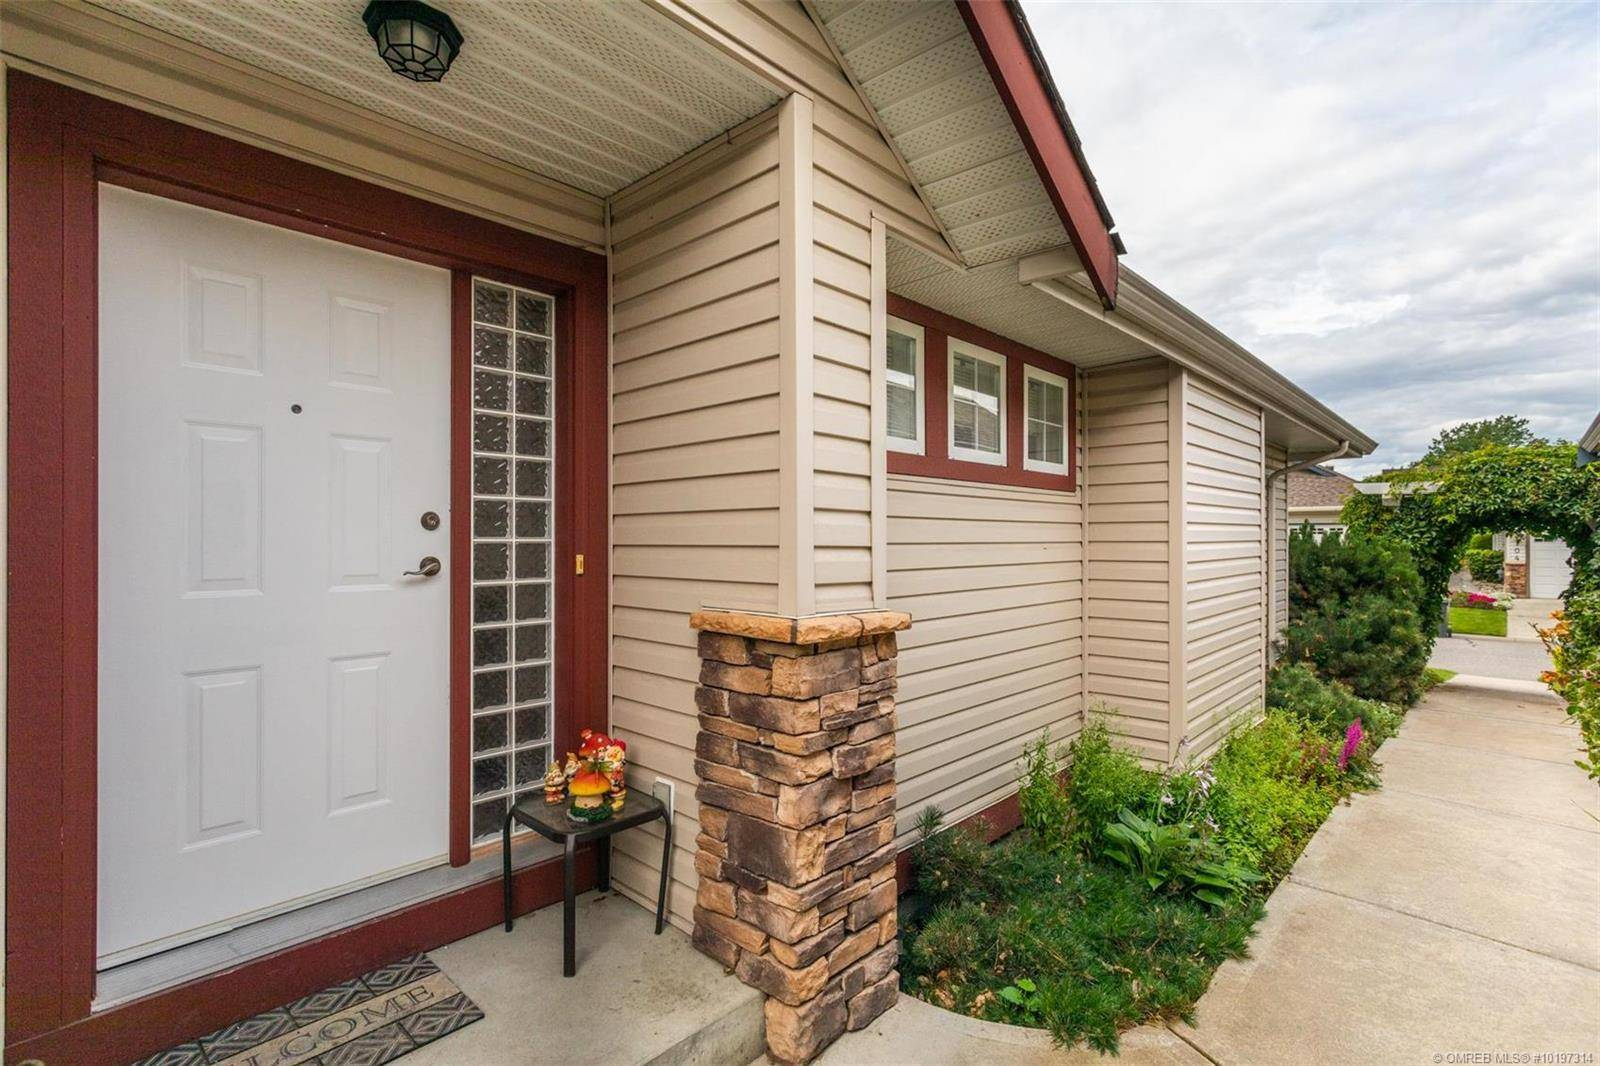 House for sale at 1188 Houghton Rd Unit 103 Kelowna British Columbia - MLS: 10197314